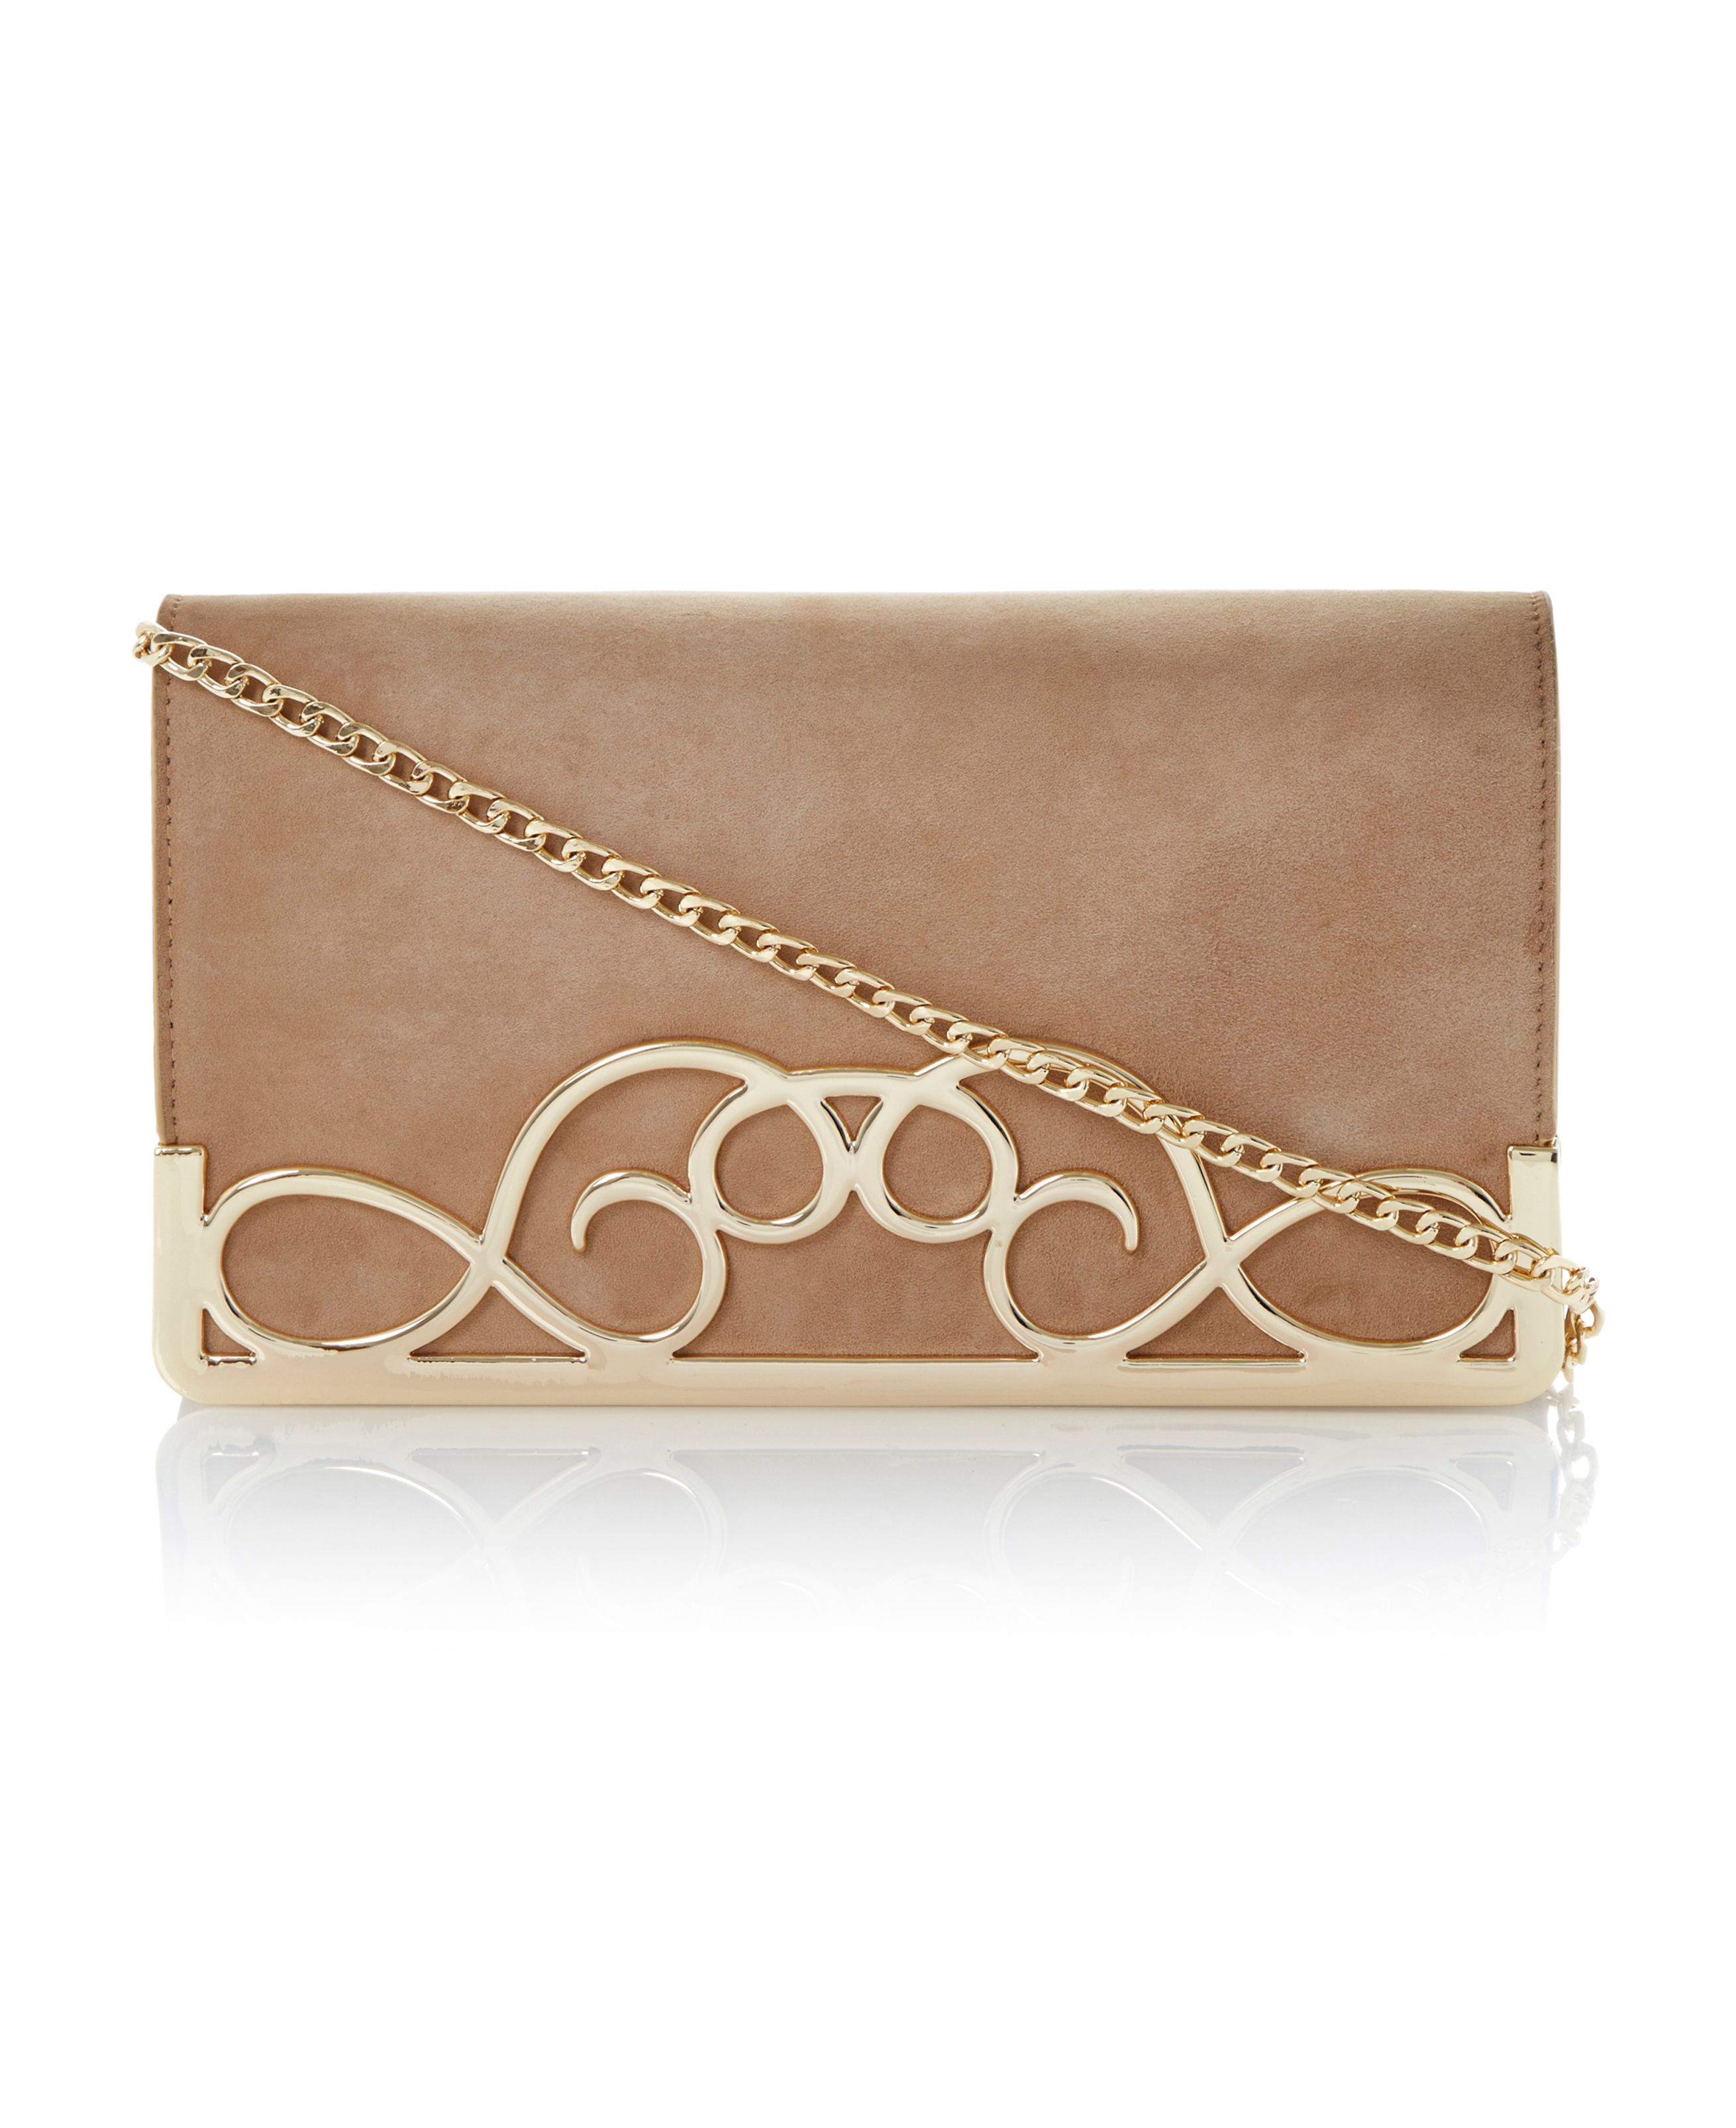 Ewirl clutch bag